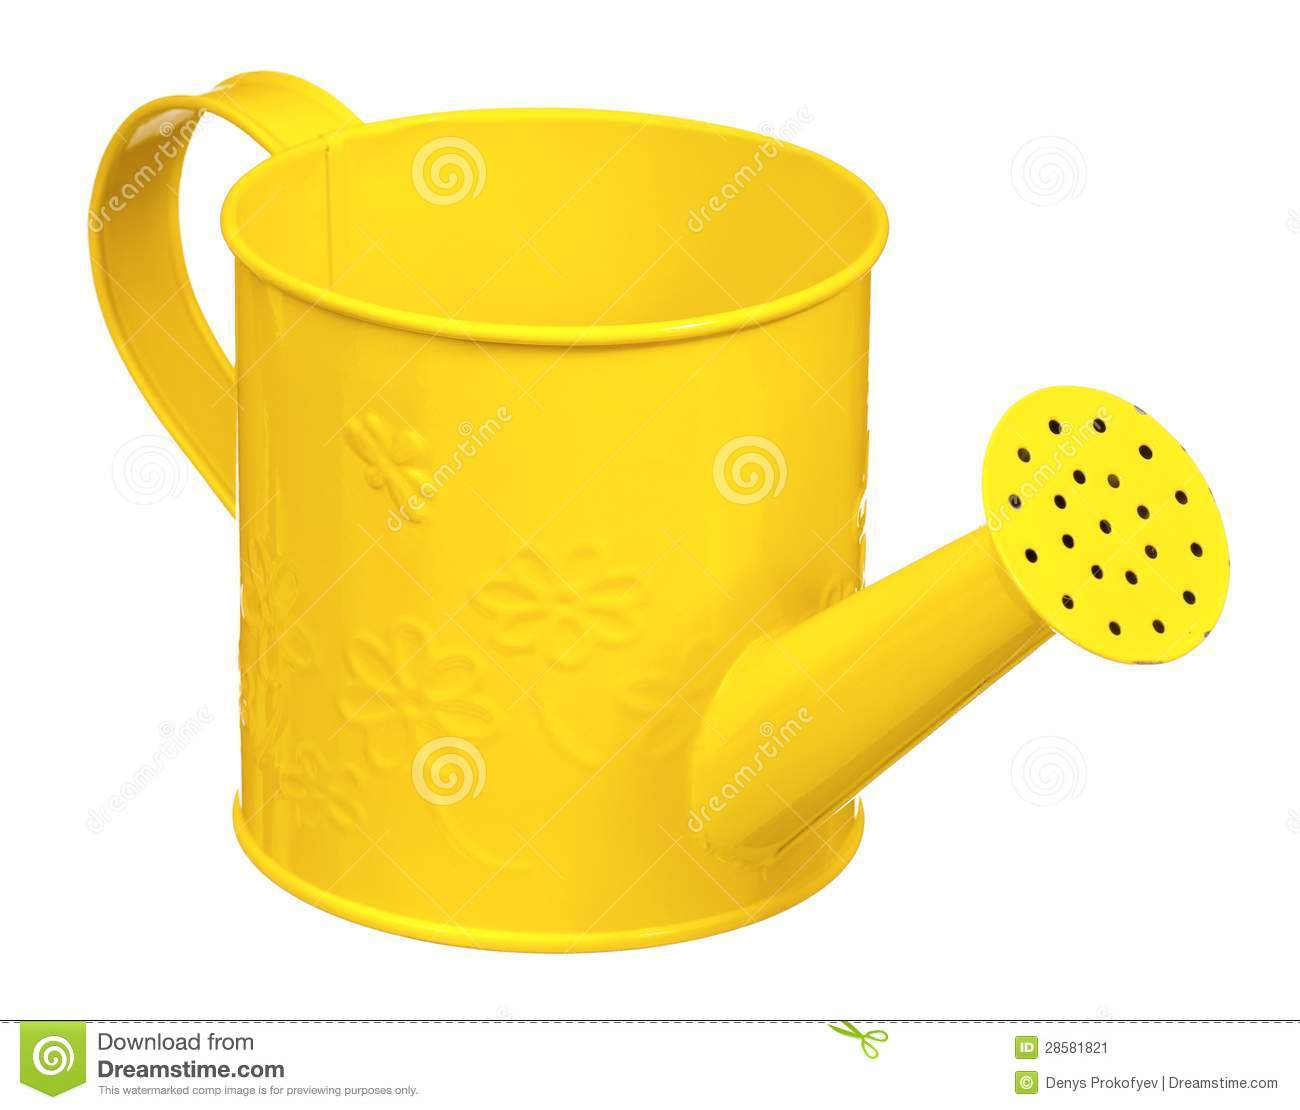 Small yellow watering can isolated on white background.